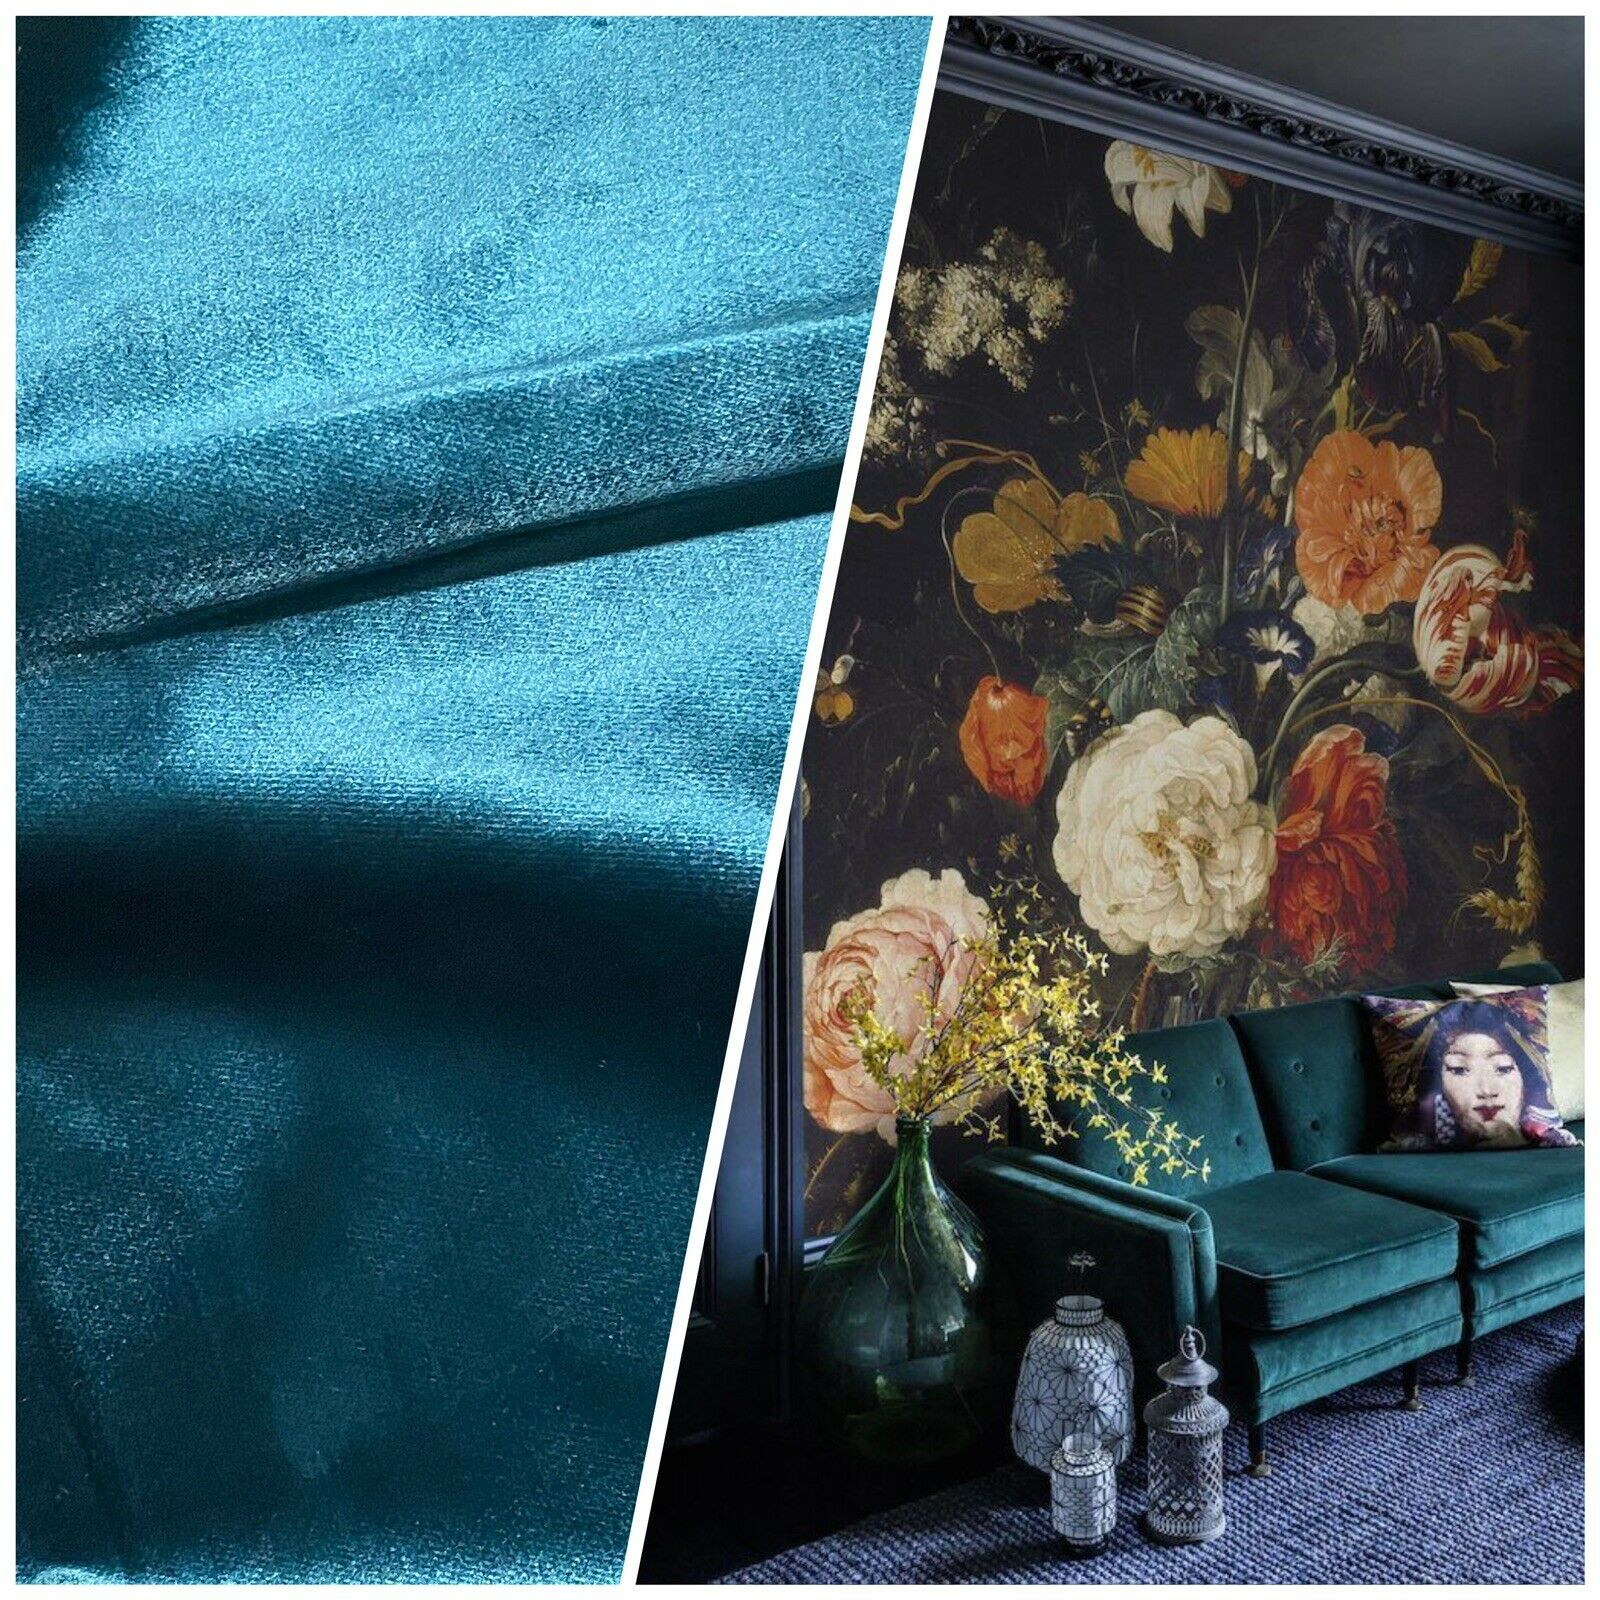 NEW Designer Made In Belgium Upholstery Velvet Fabric - Teal Blue- Peacock